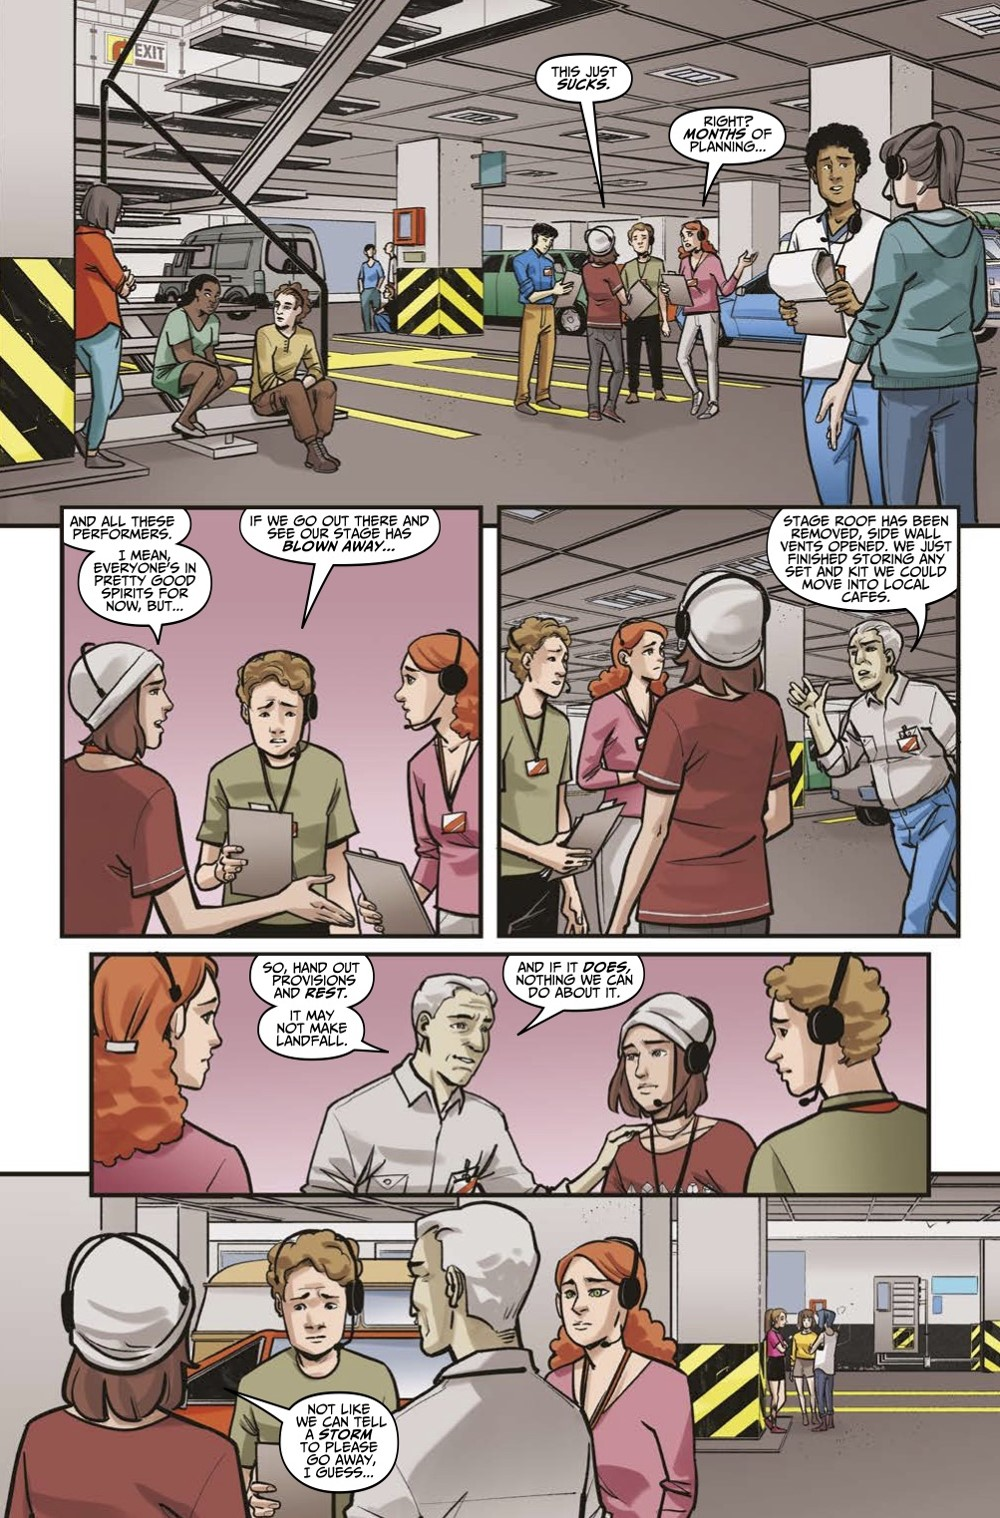 LIS-Settling-Dust-Page-1 ComicList Previews: LIFE IS STRANGE SETTLING DUST #1 (OF 4)